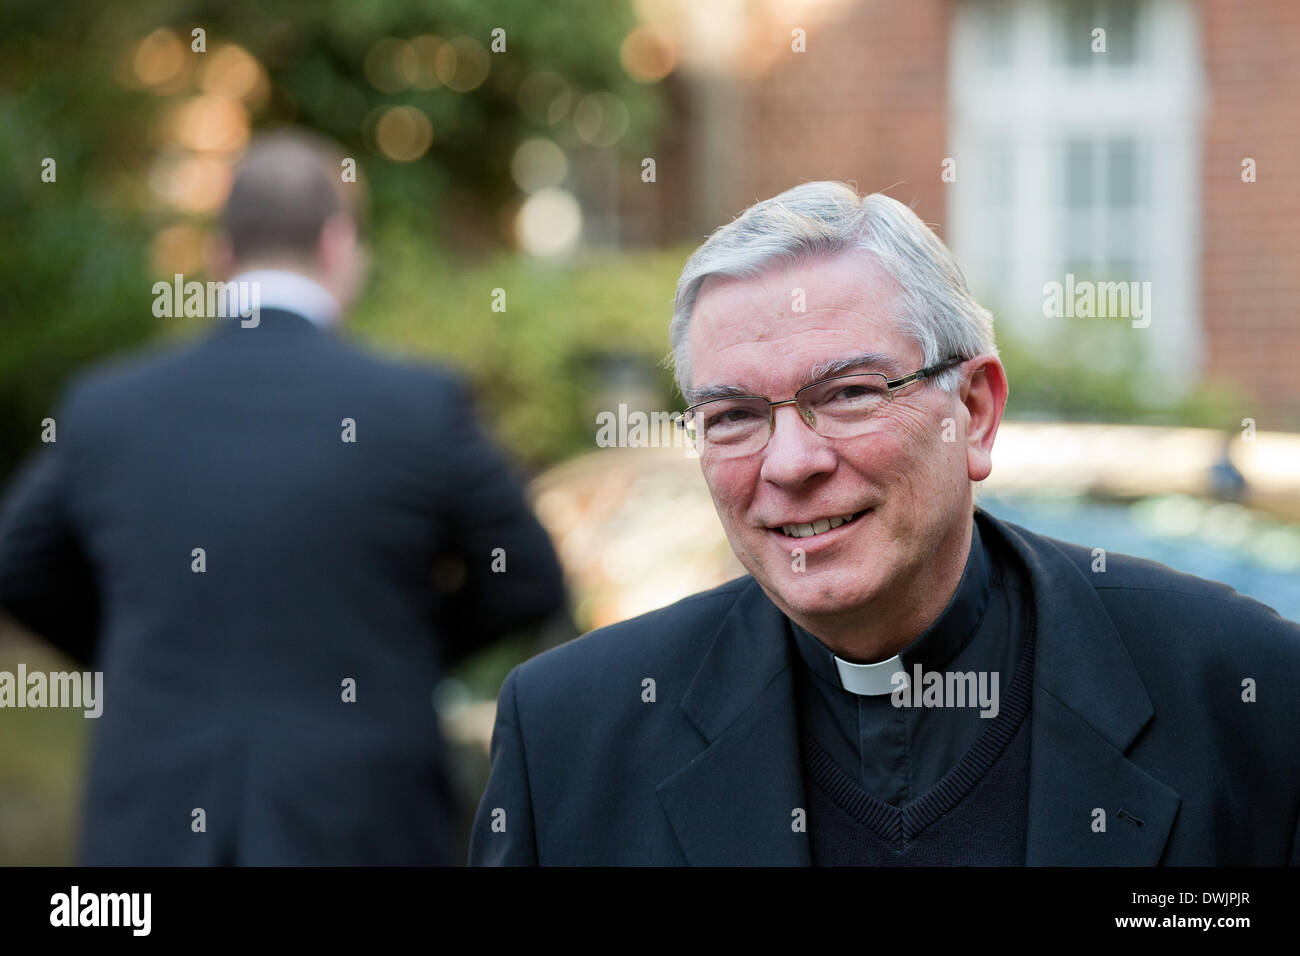 Muenster, Germany. 10th Mar, 2014. Suffragan Thomas Loehr arrives for the spring plenary meeting of the German Bishops' Conference as representative of the suspended Limburg bishop Tebartz-van Elst in Muenster, Germany, 10 March 2014. The meeting takes palce until 13 March 2014. Photo: ROLF VENNENBERND/dpa/Alamy Live News - Stock Image